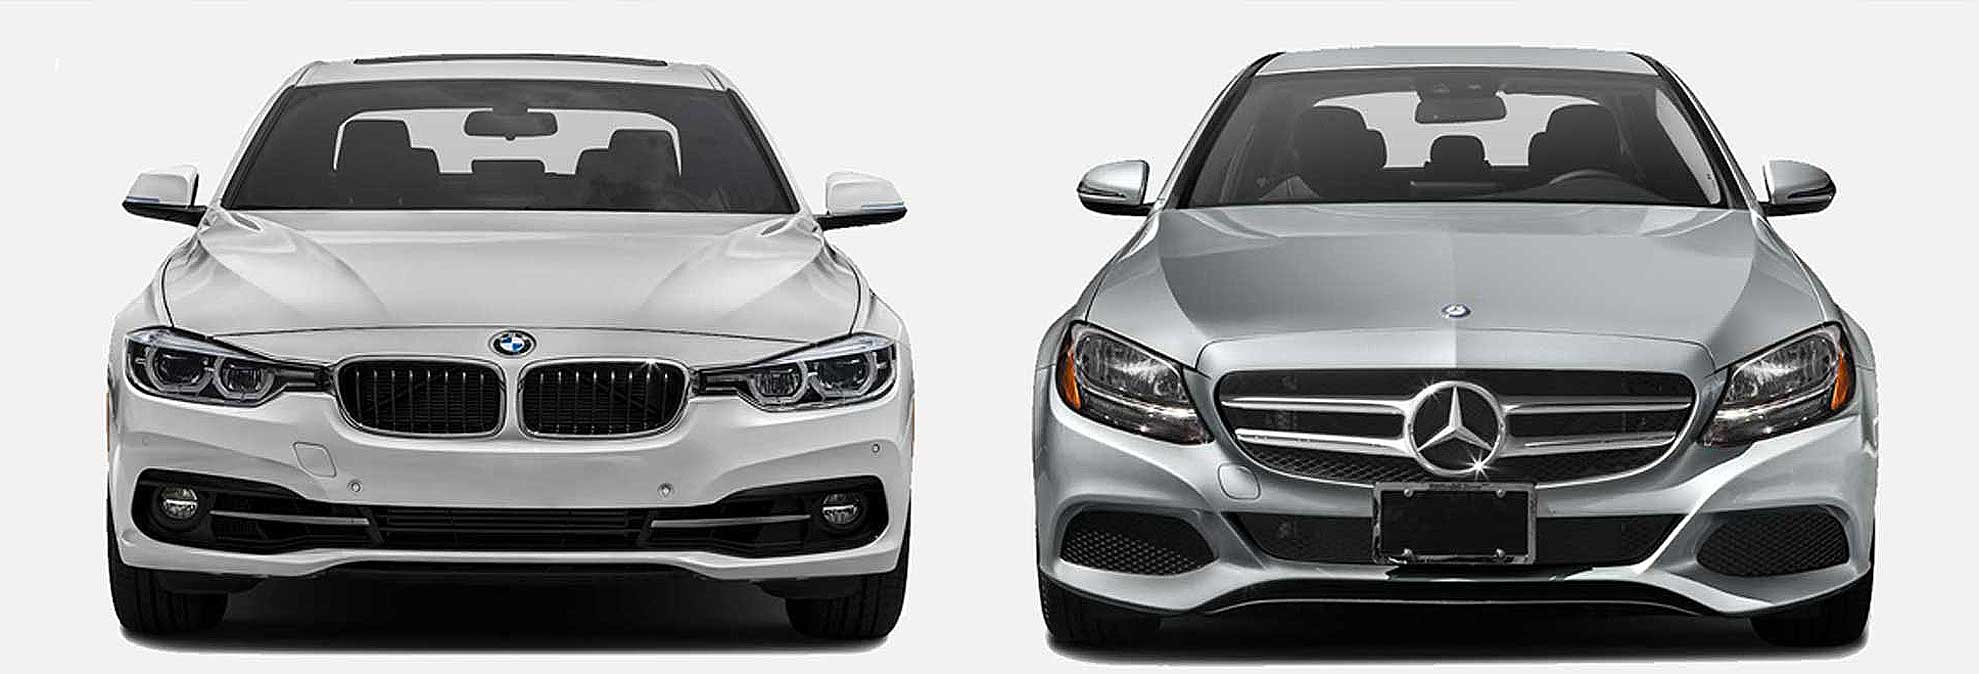 BMW 3 Series vs Mercedes-Benz C-Class Sports Sedans - Consumer Reports